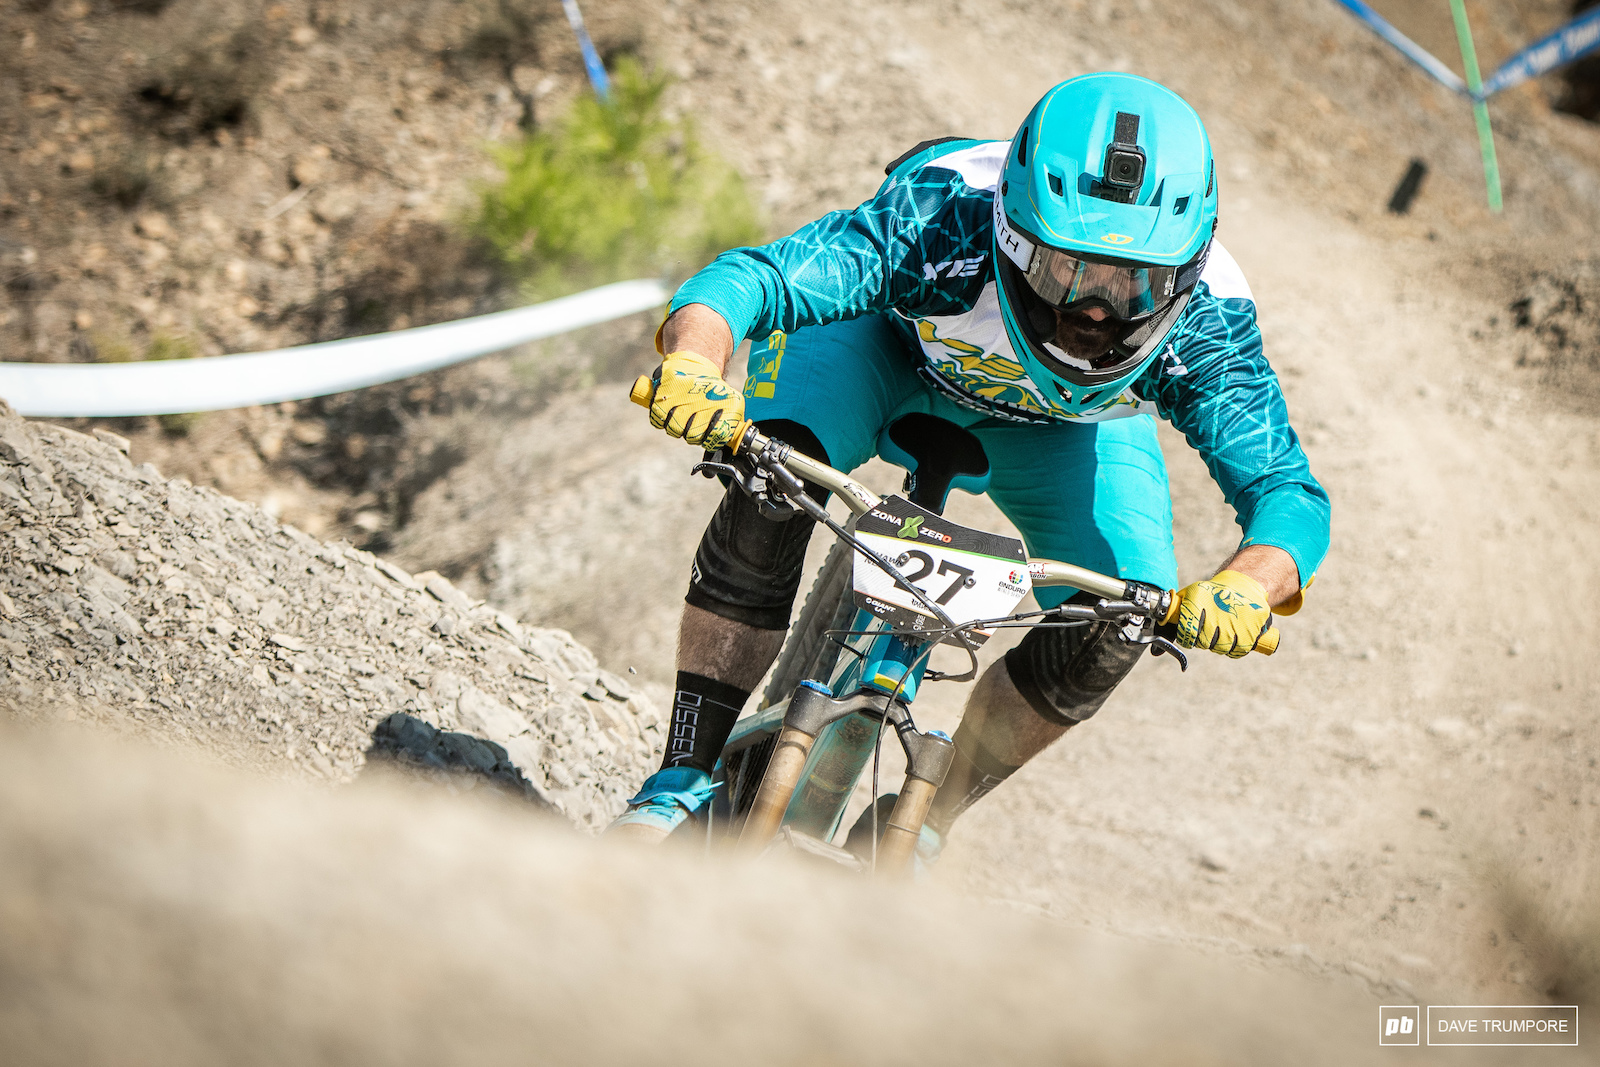 Shawn Neer seems to thrive in the dry and dusty conditions with a top 10 to start the season in Chile. So the conditions in Spain should definitely be in his favor.